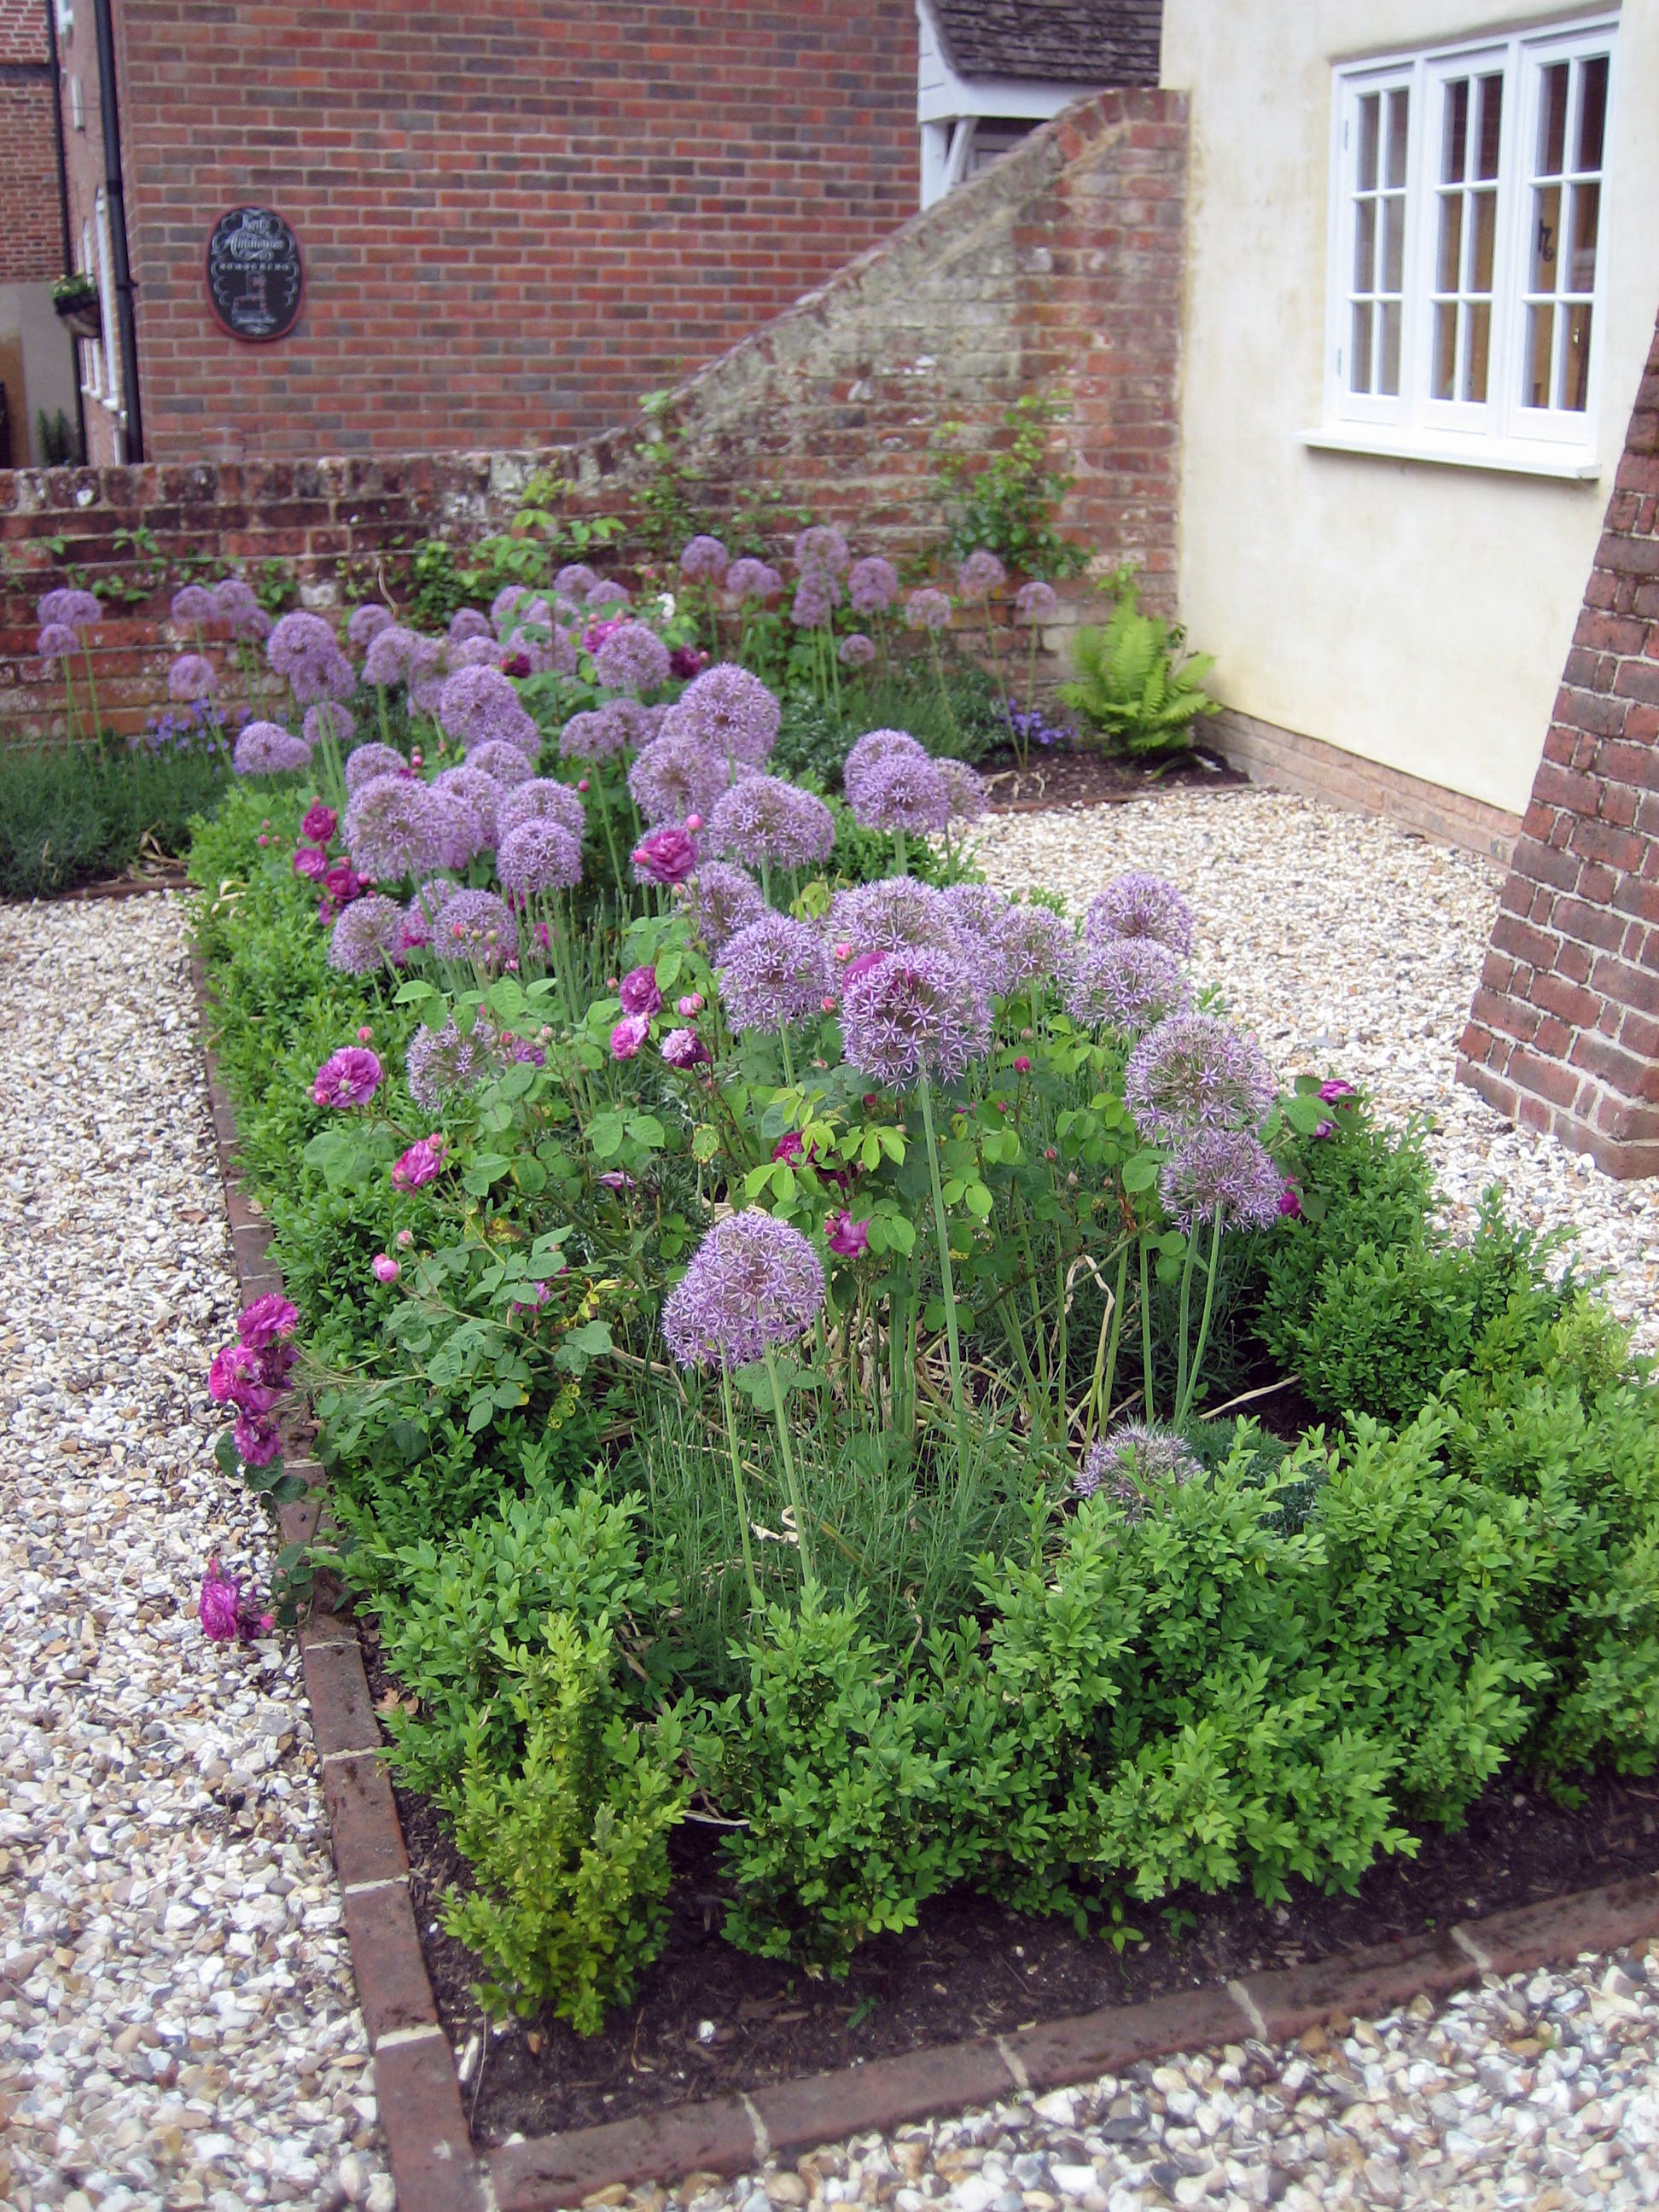 Cottage garden romsey hampshire amy perkins garden for Cottage garden design